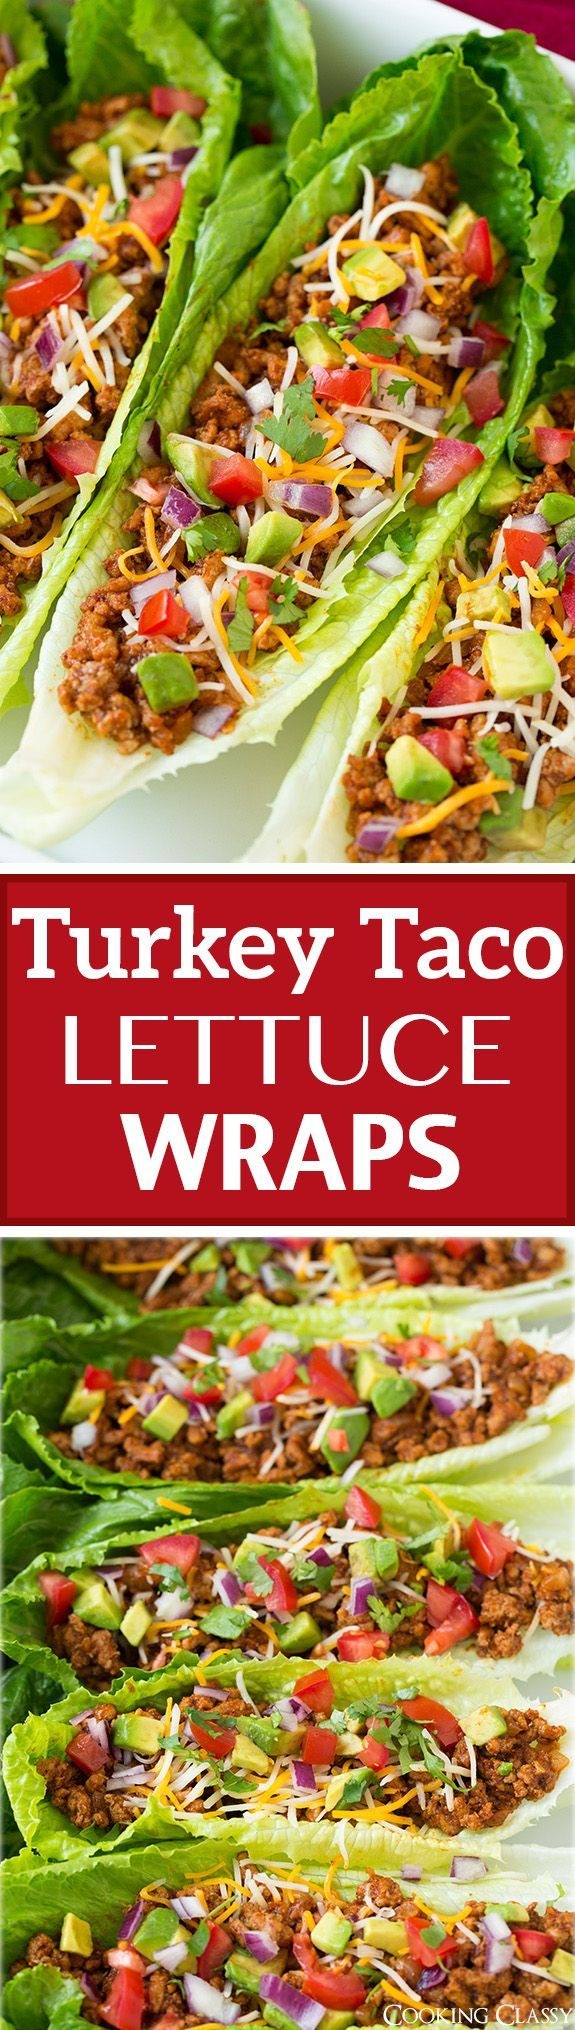 Turkey Taco Lettuce Wraps | Recipe | Tacos, Wraps and Classic